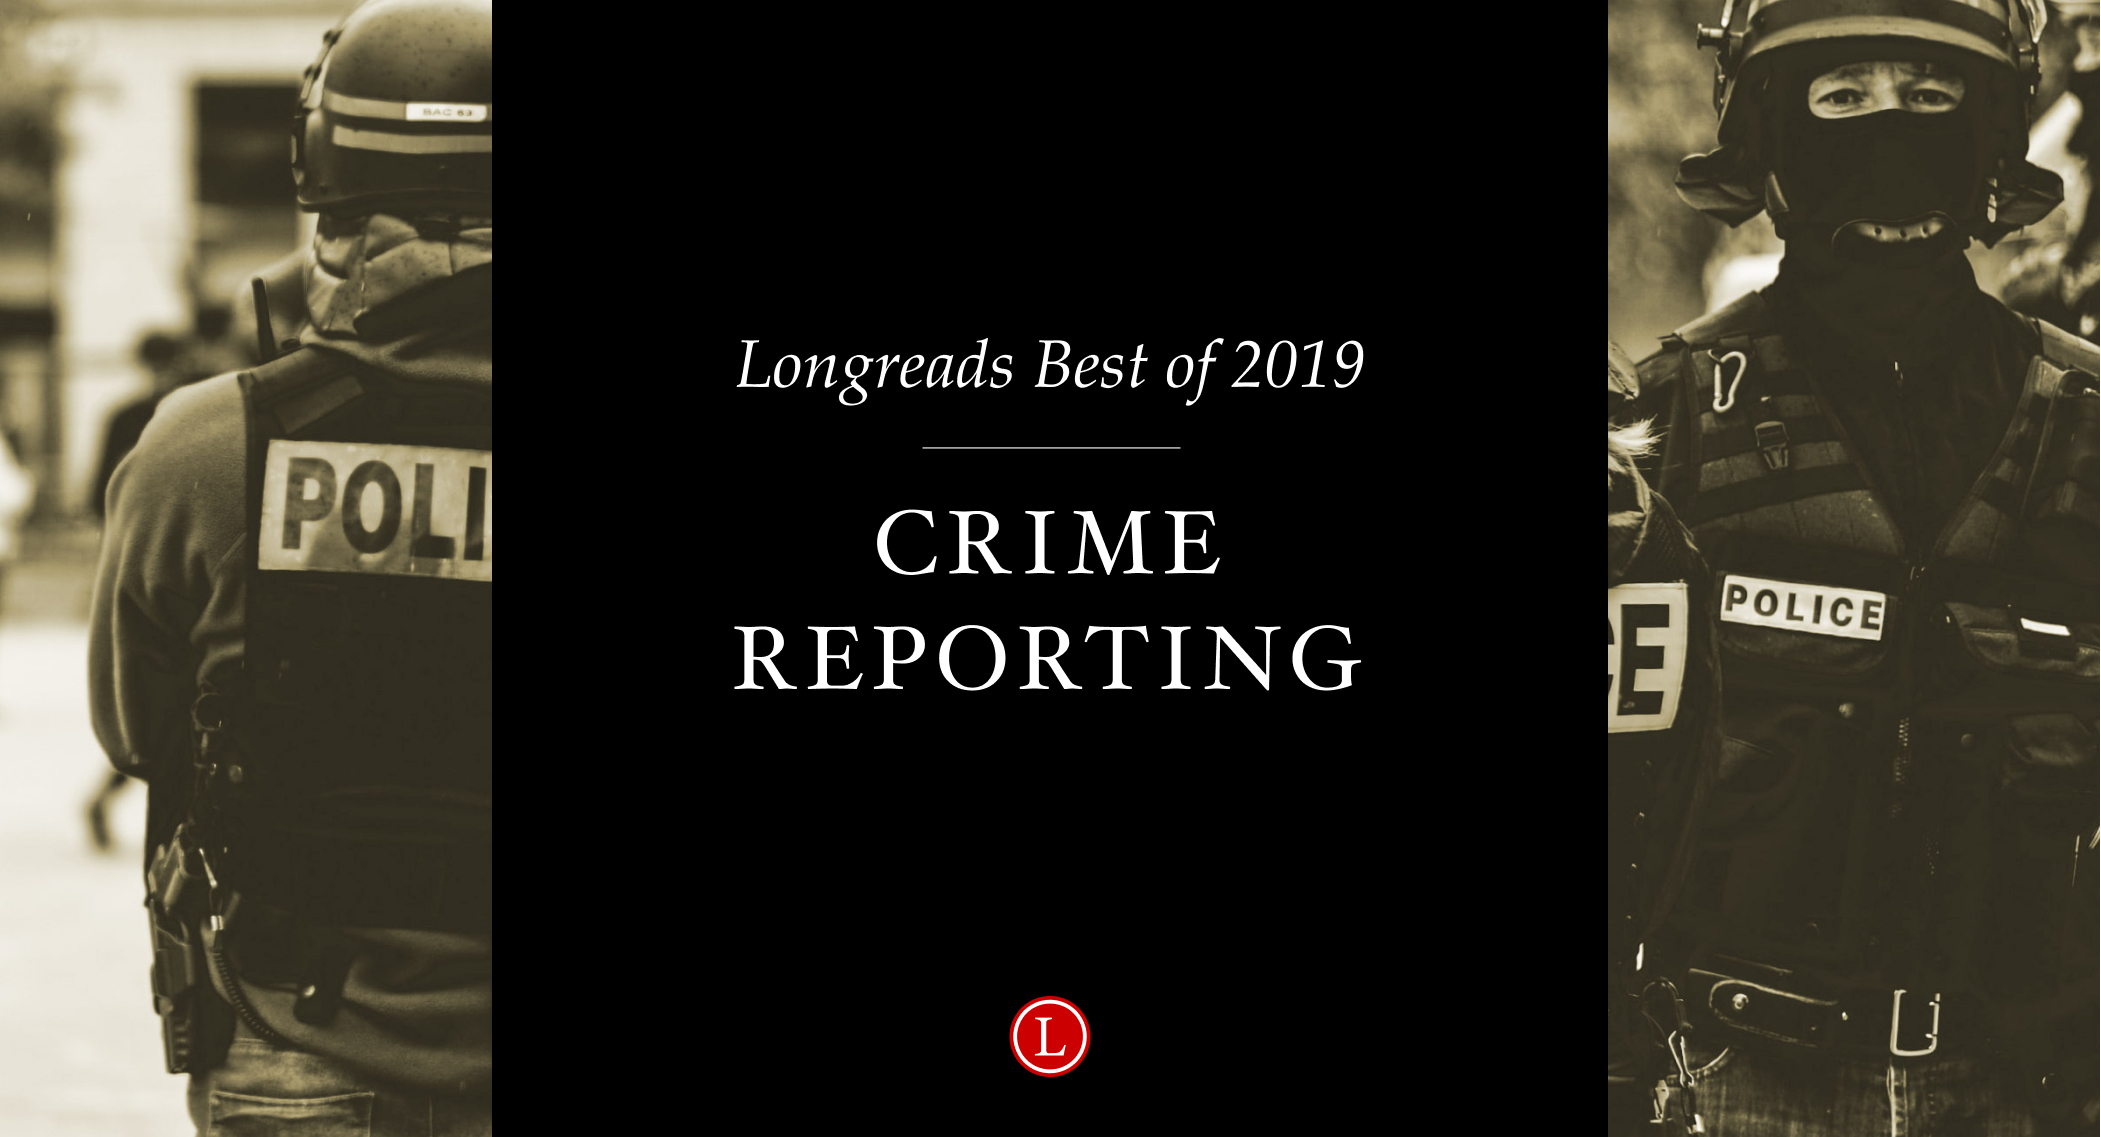 Longreads Best of 2019: Crime Reporting